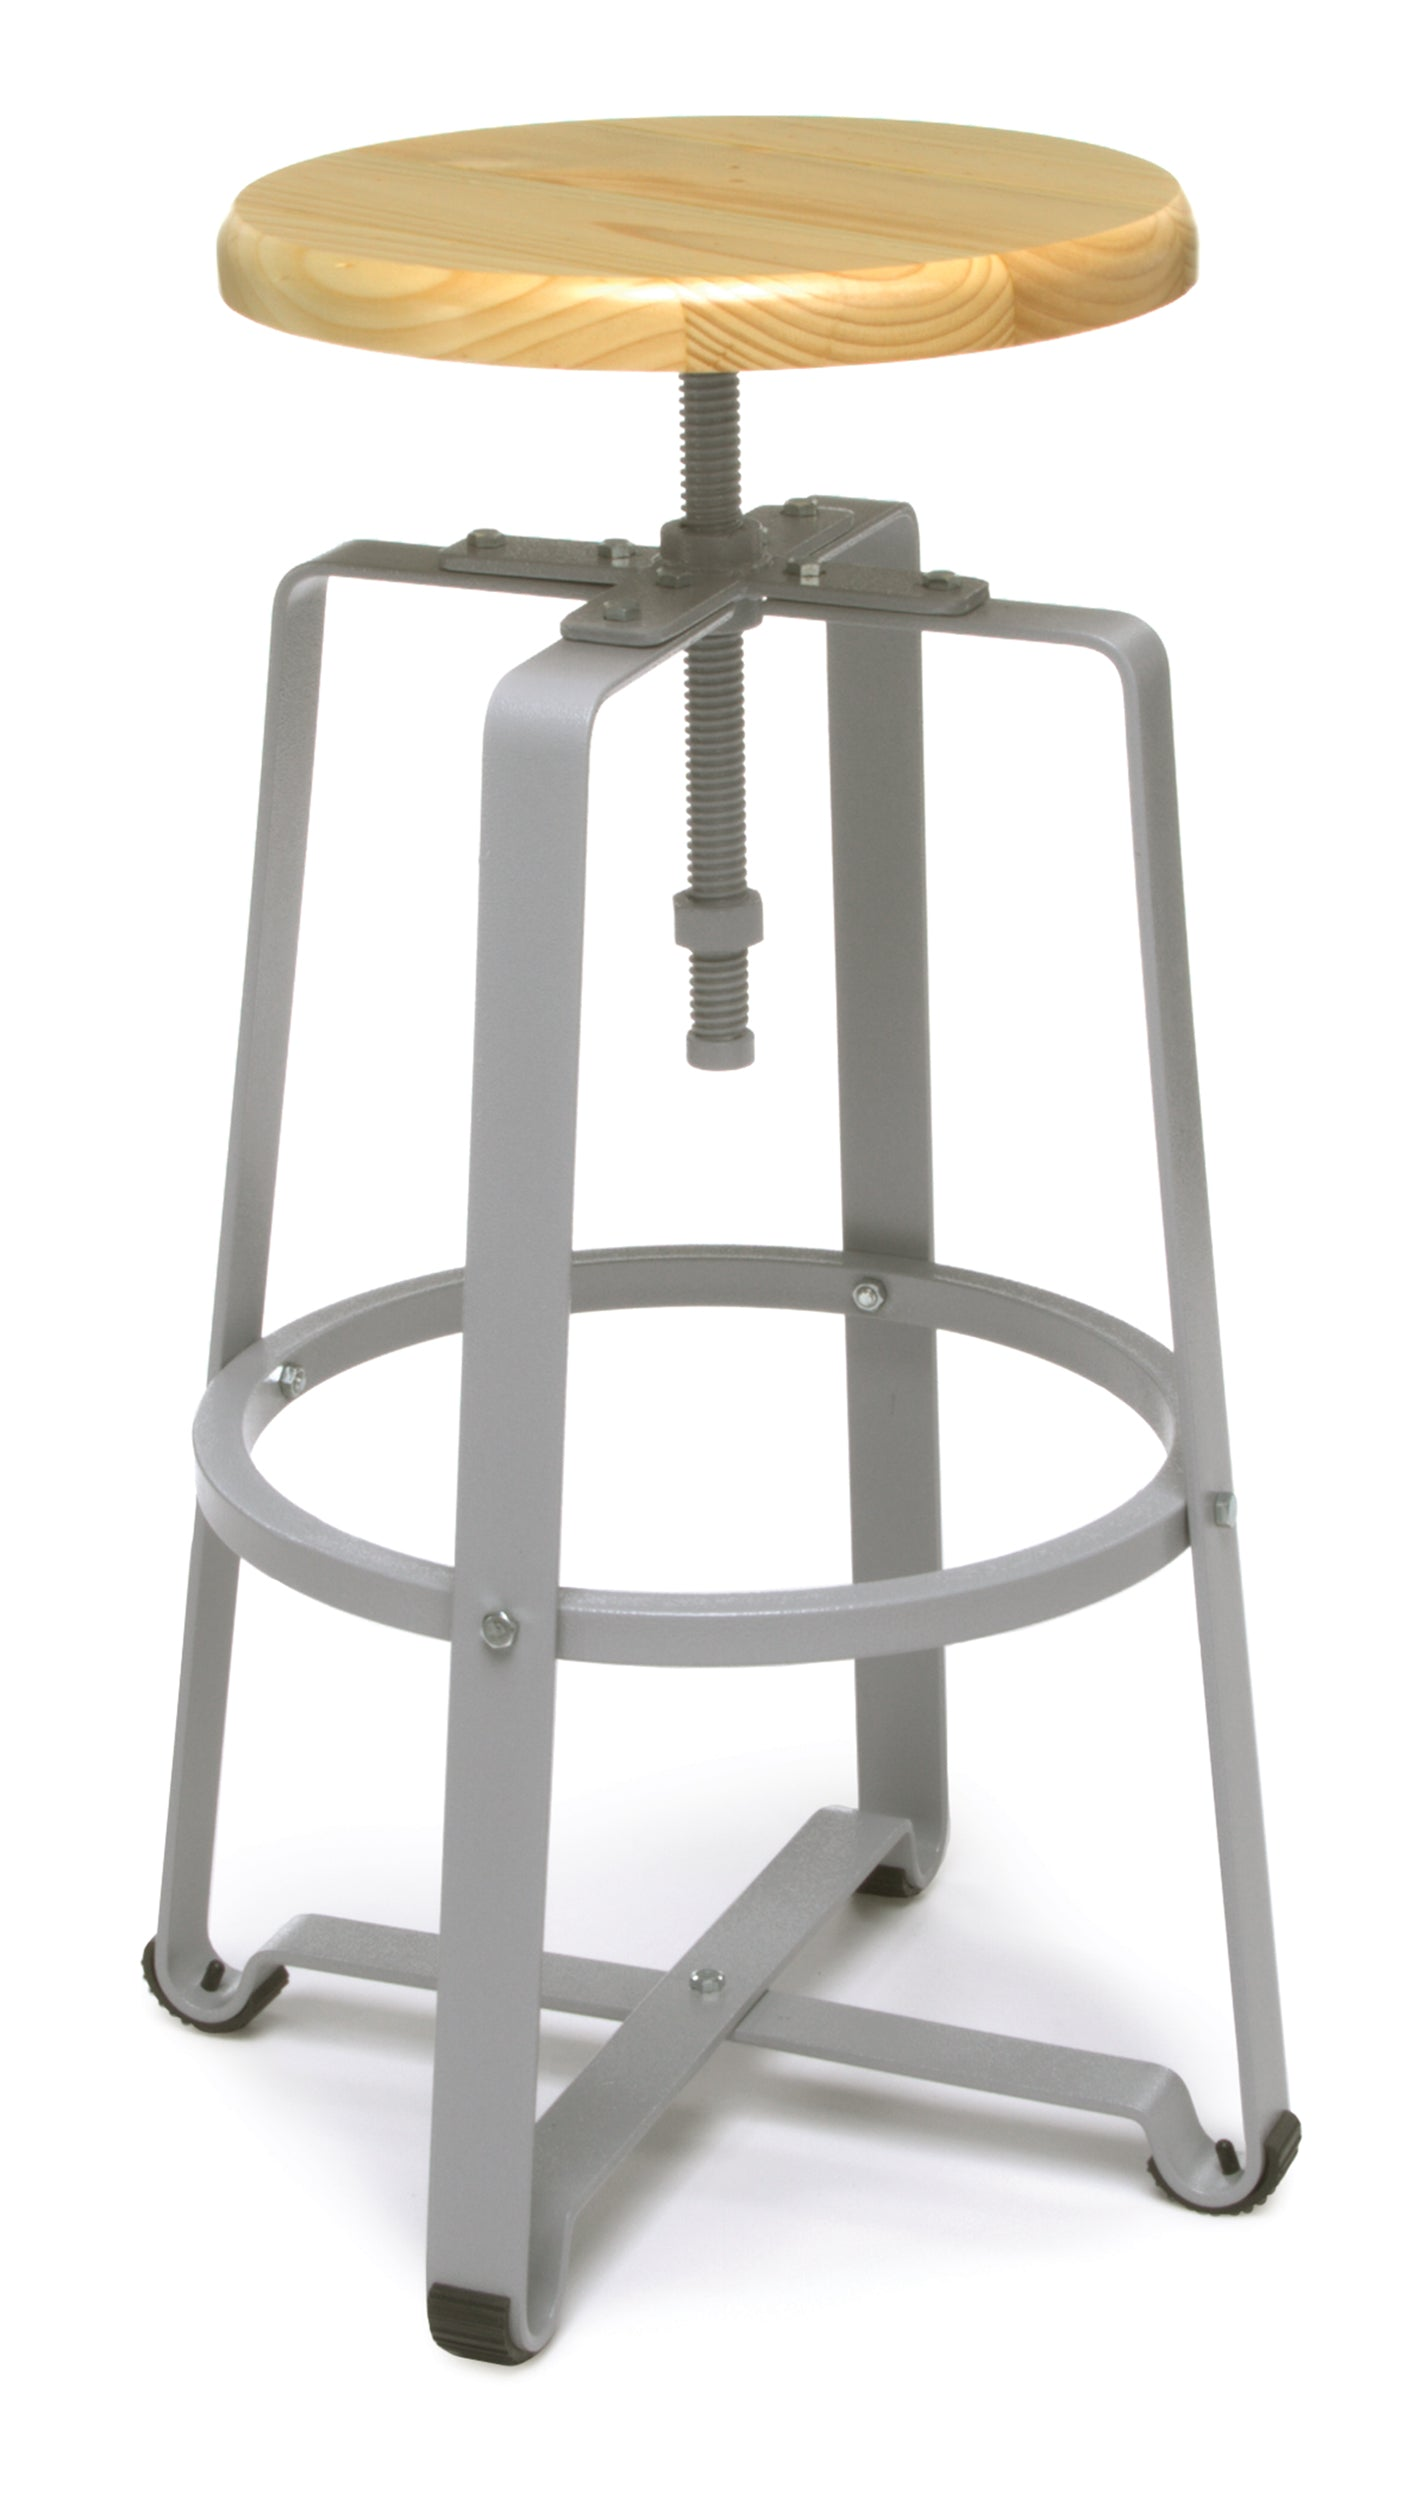 Ofminc Model 920 Endure Series Tall Stool